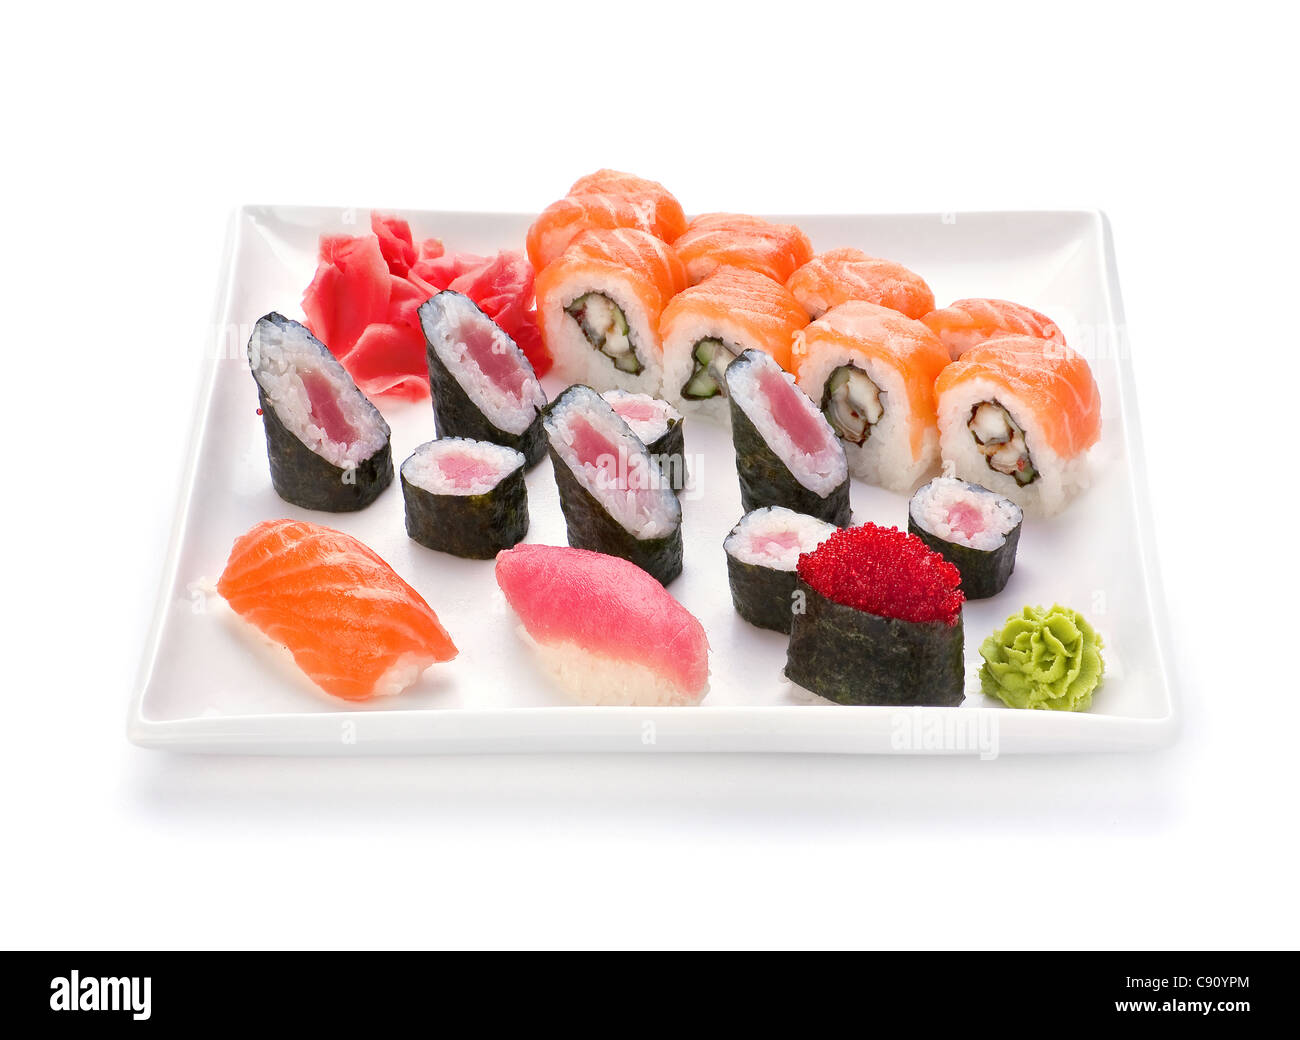 Japanese food sushi and roll in plate on white - Stock Image